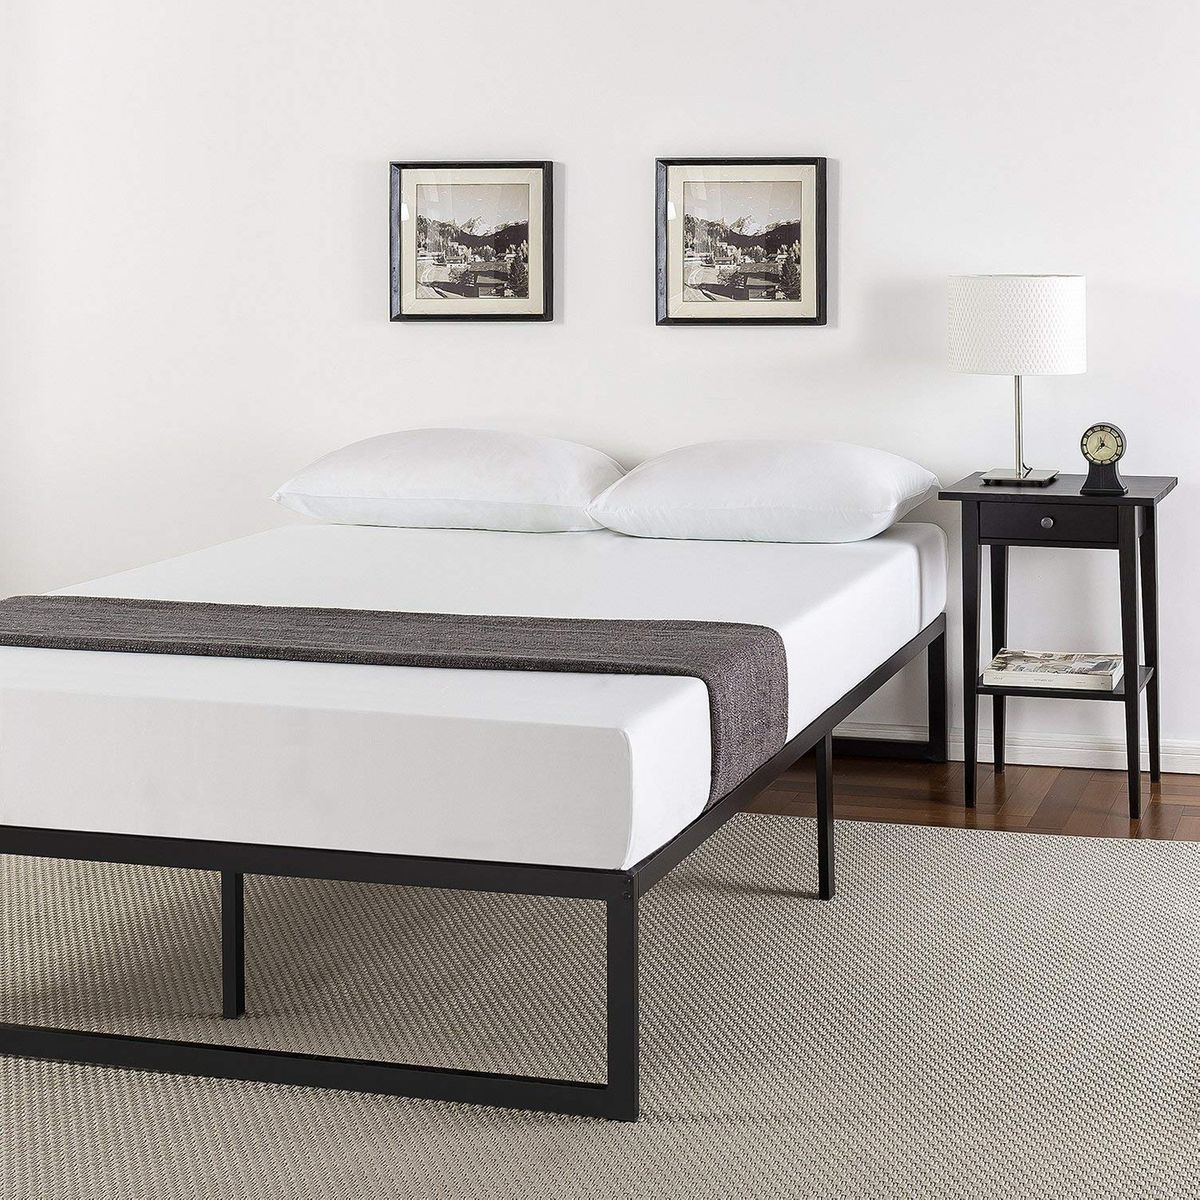 18 Best Platform Beds 2021 The Strategist New York Magazine